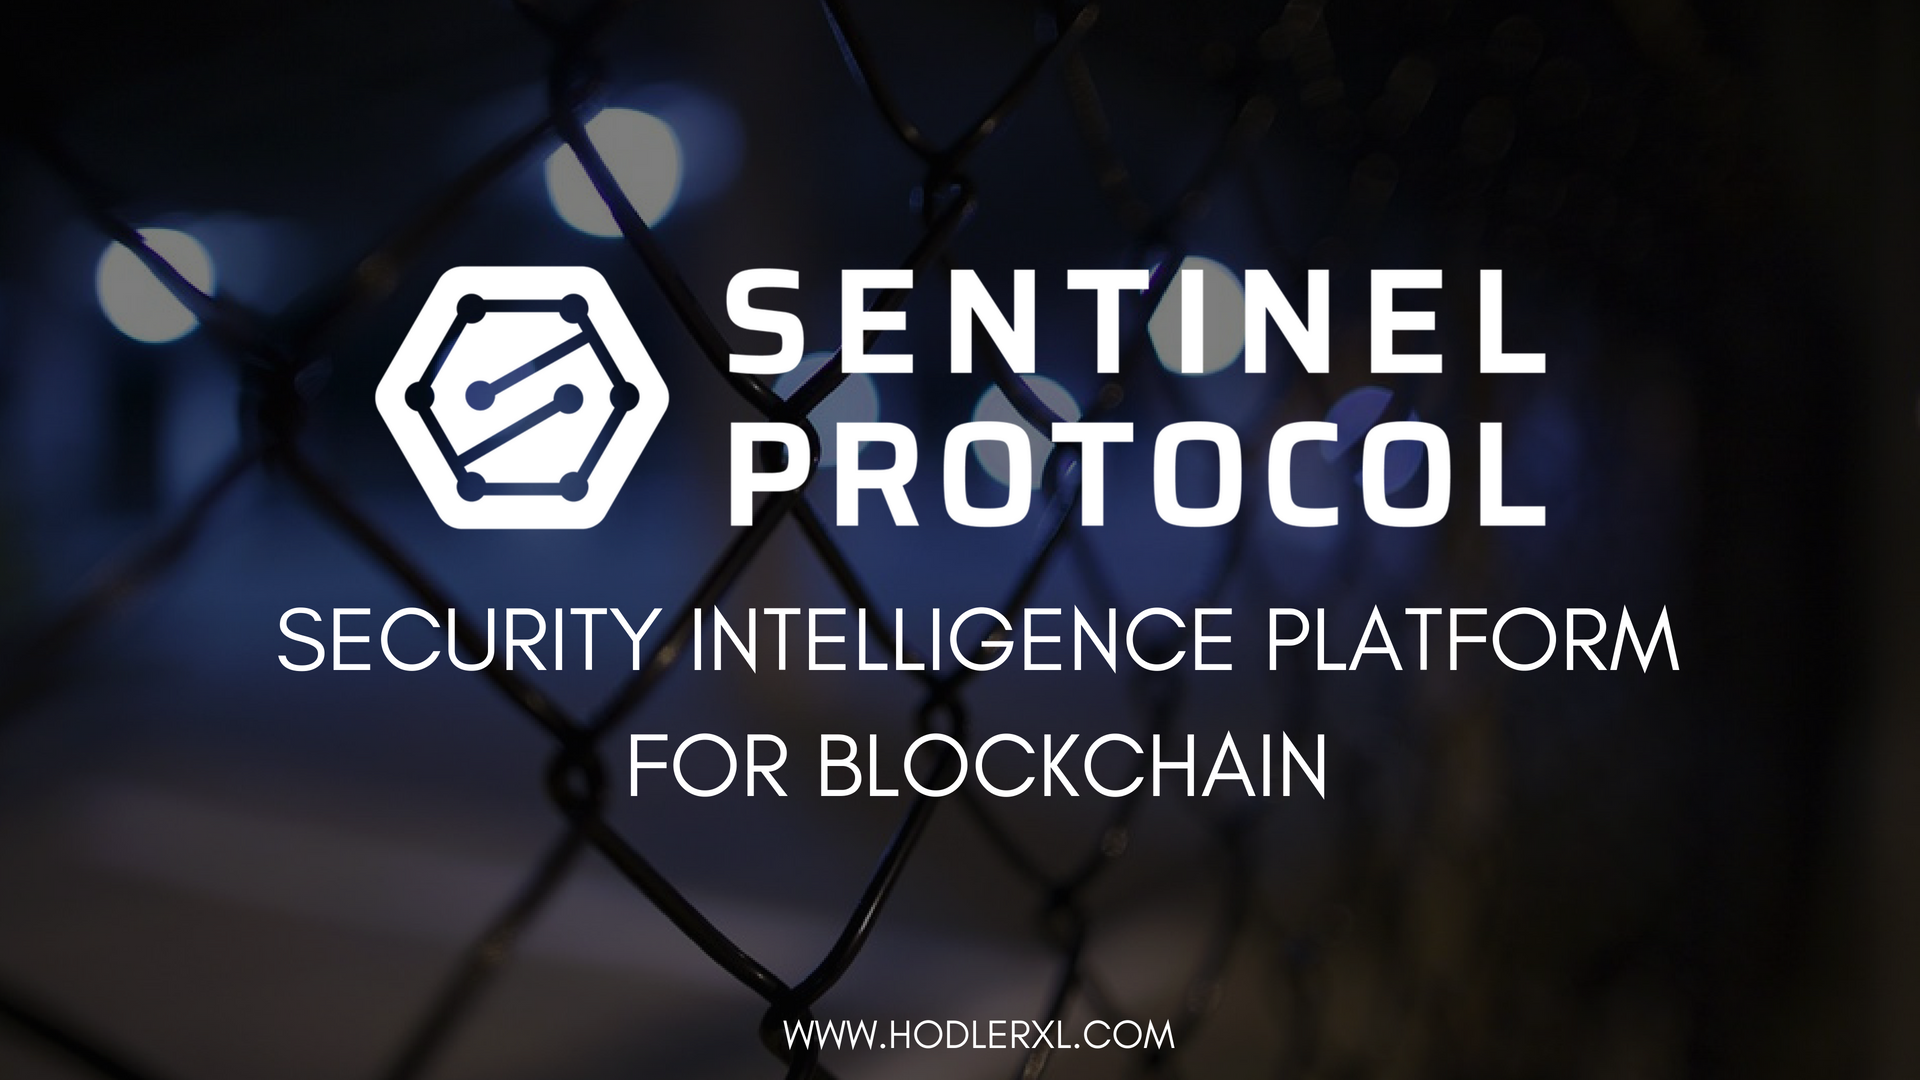 Sentinel Protocol Security Intelligence Platform for Blockchain